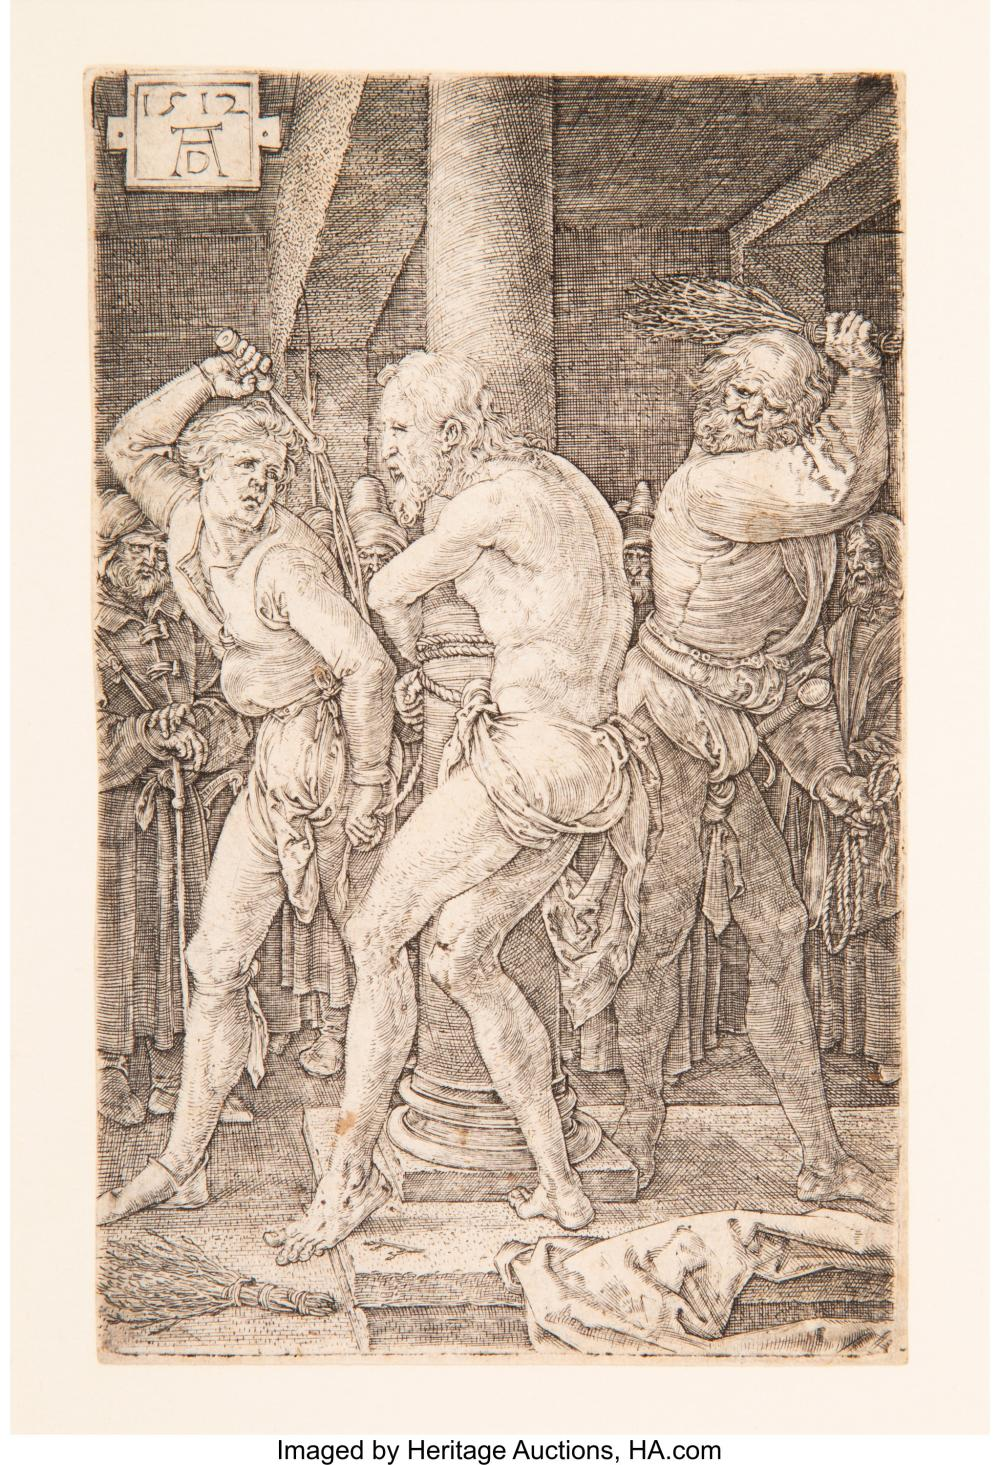 Albrecht Dürer (German, 1471-1528) The Flagellation, from The Engraved Passion,